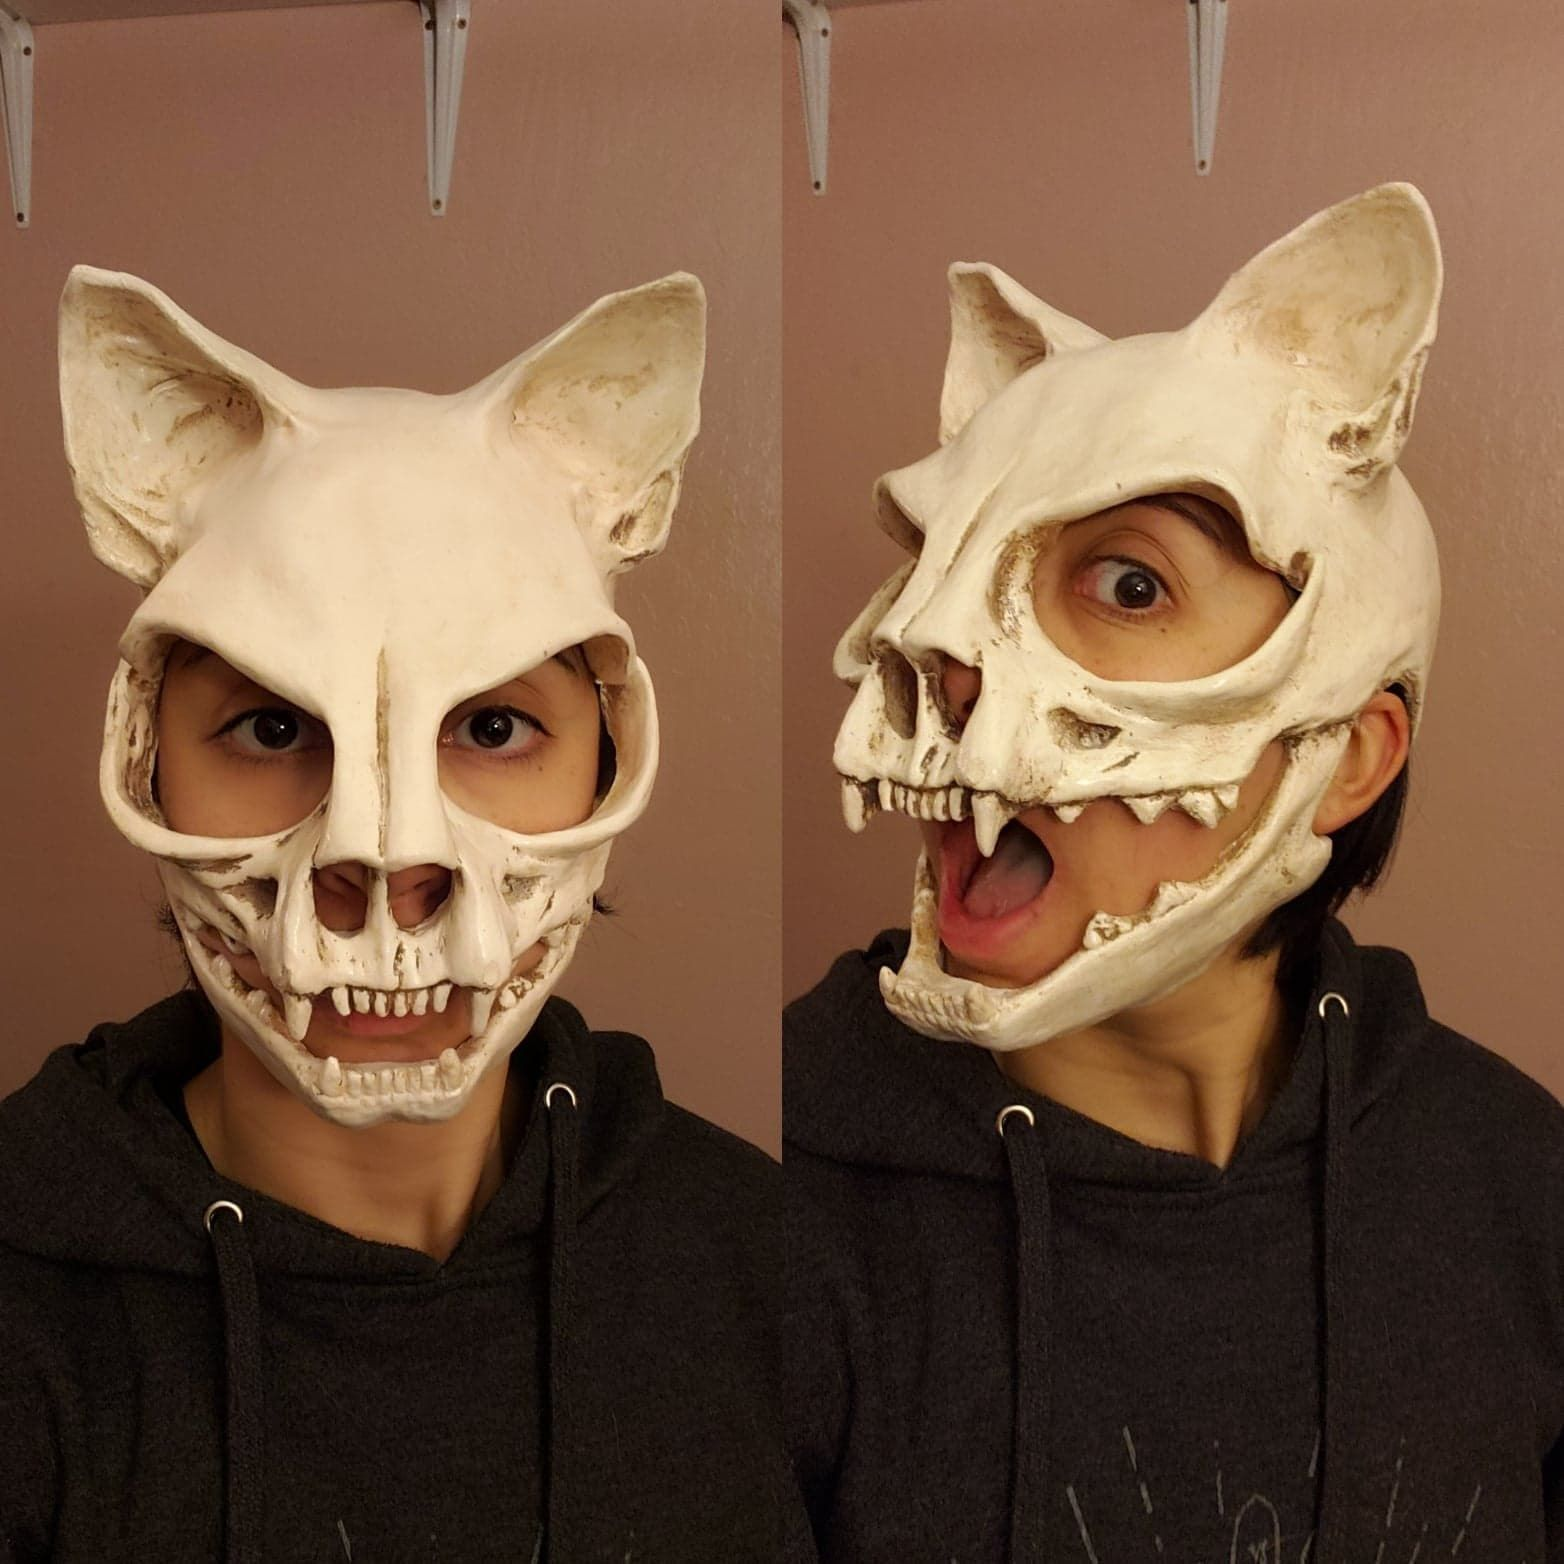 Sami added a photo of their purchase Cat skull, Skull